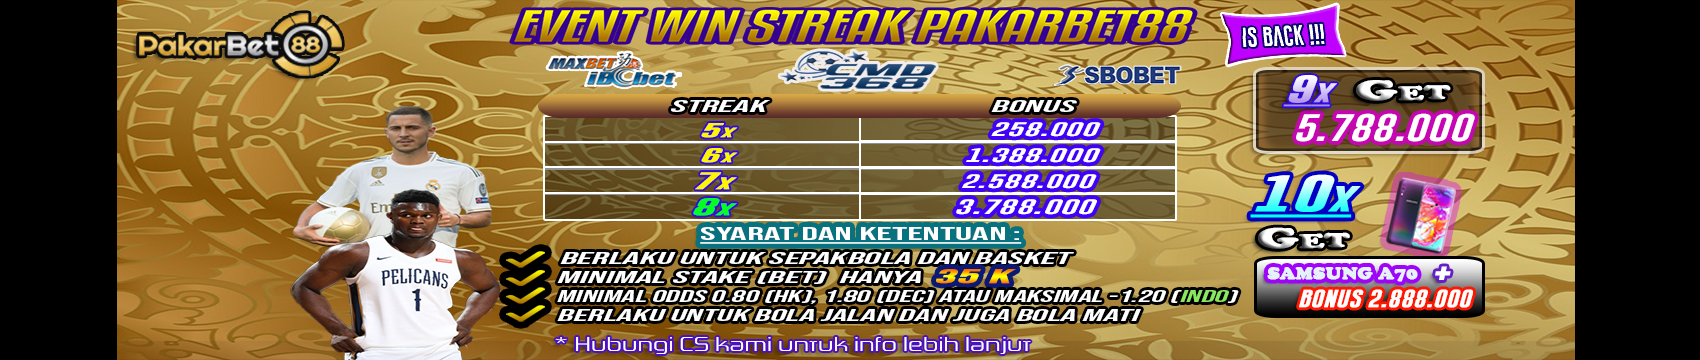 Banner-Event-Win-Streak-NEW-stake-35k-desktop